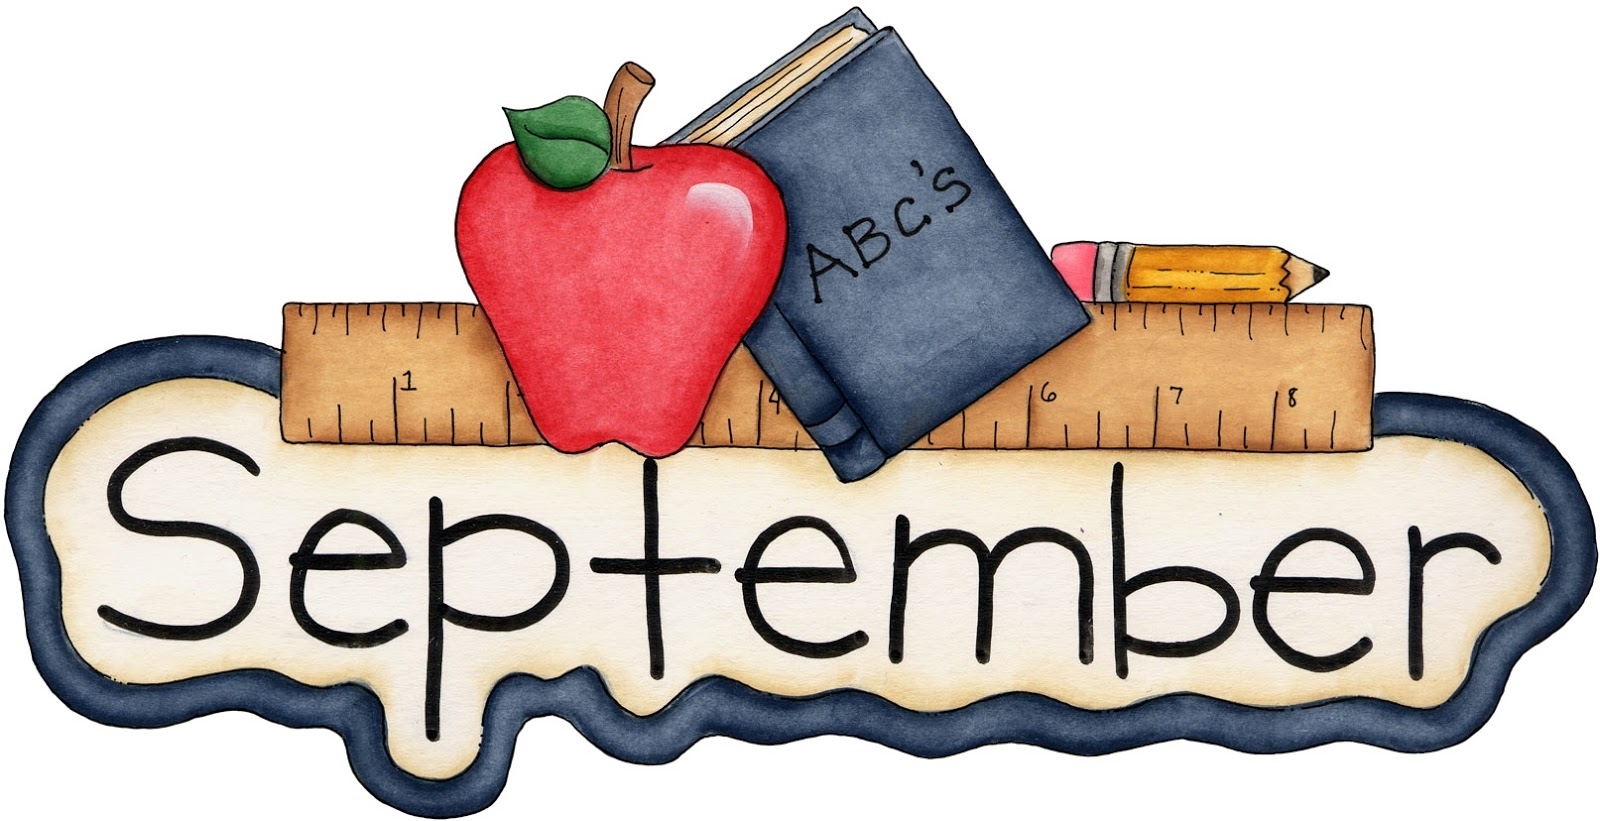 monthly calendar clipart at getdrawings com free for personal use rh getdrawings com